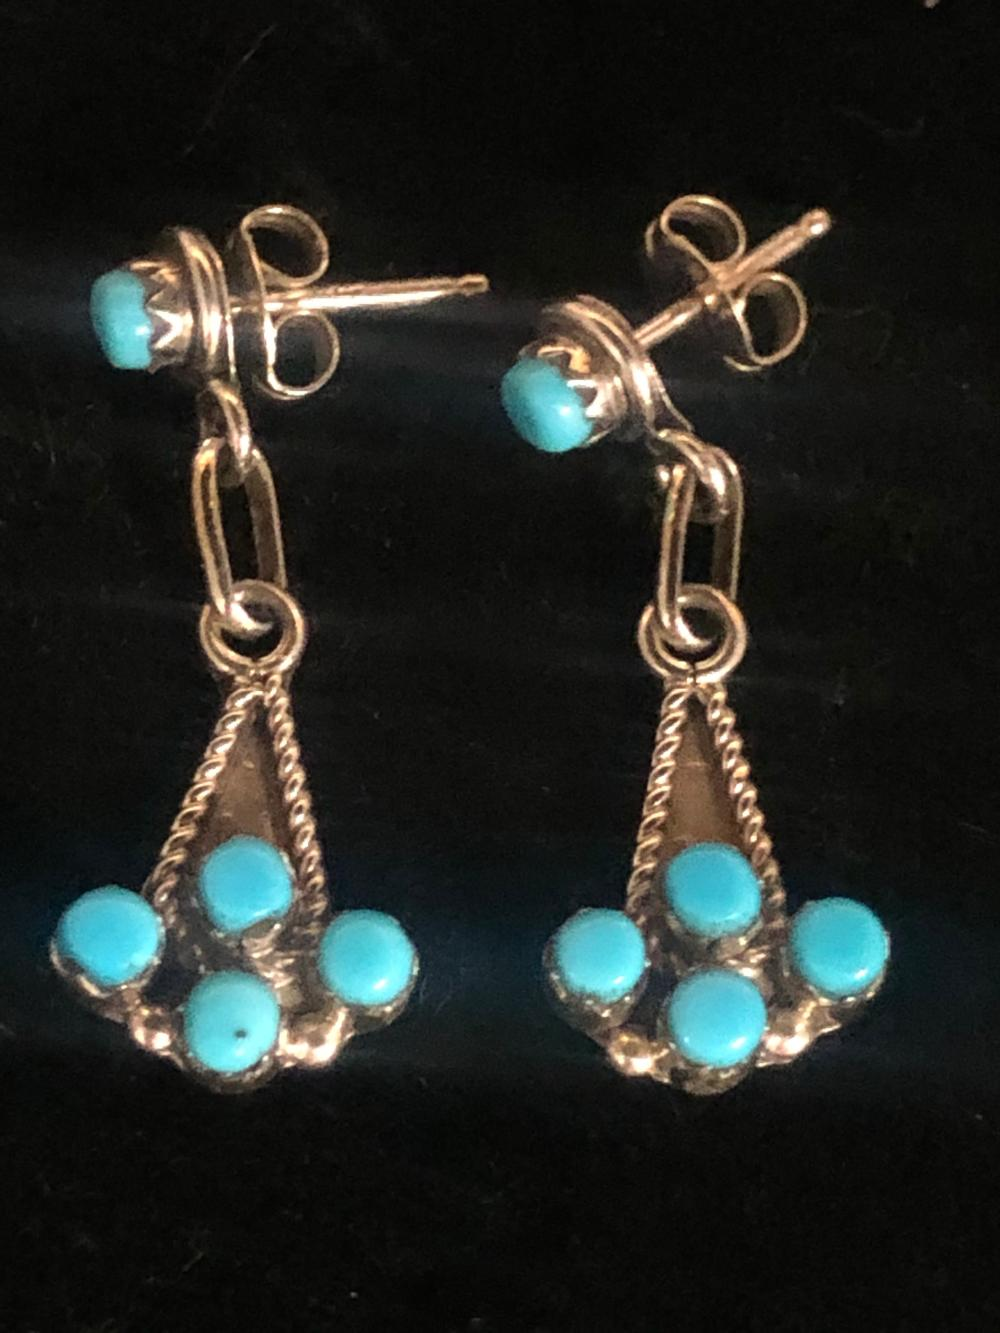 Turquoise inlay sterling silver earrings